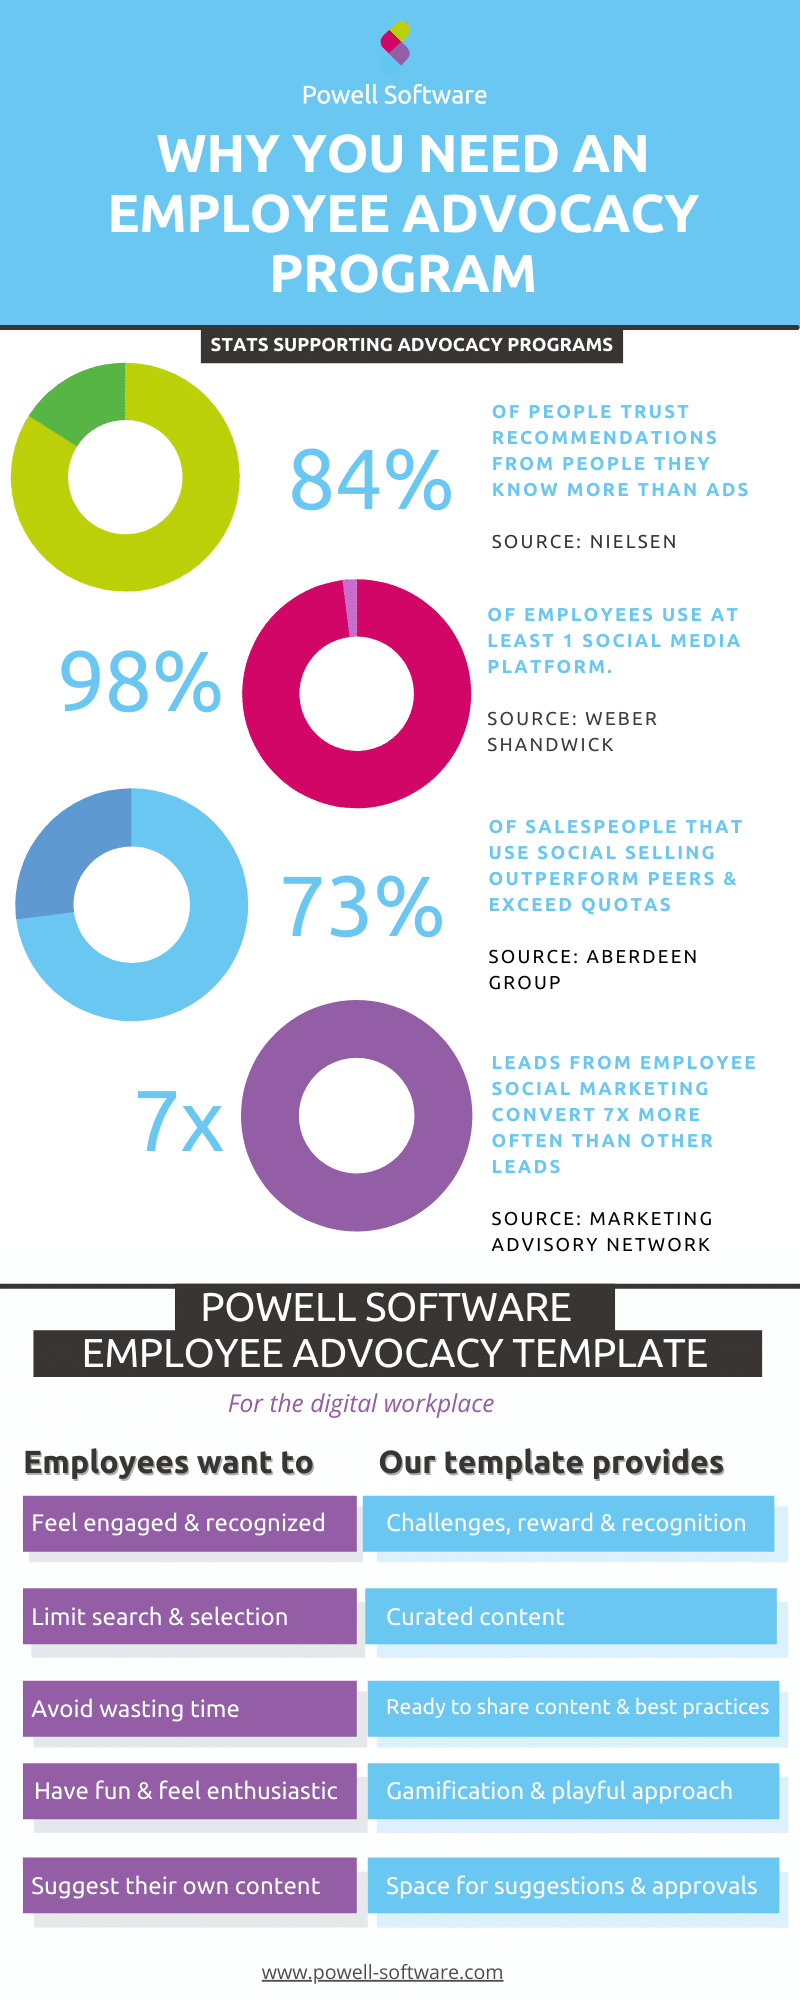 Employee Advocacy Infographic - Powell Software